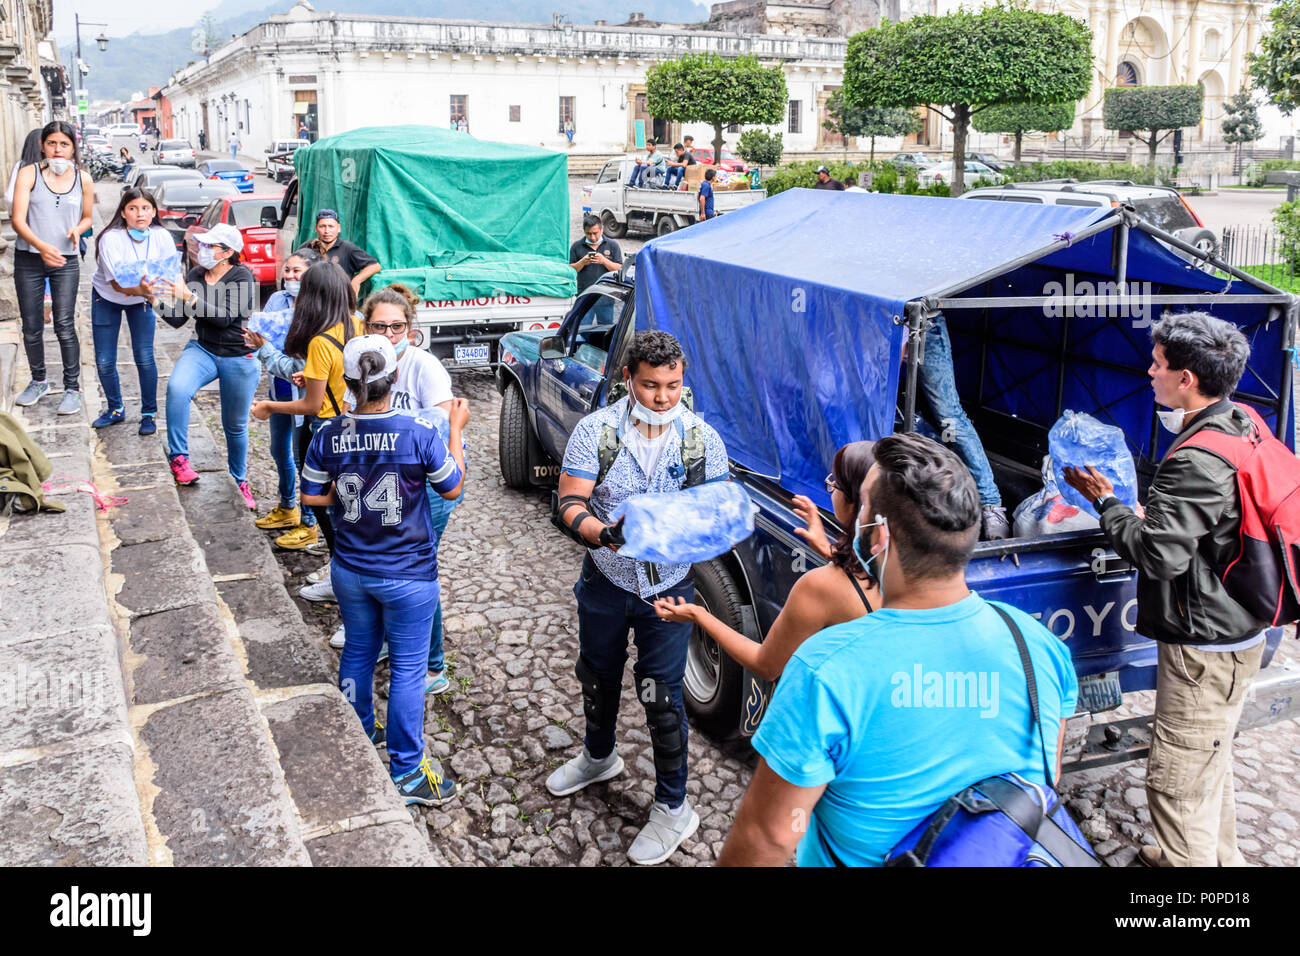 Antigua,, Guatemala -  June 5, 2018:  Volunteers load aid supplies to take to area affected by eruption of Fuego volcano on June 3 - Stock Image